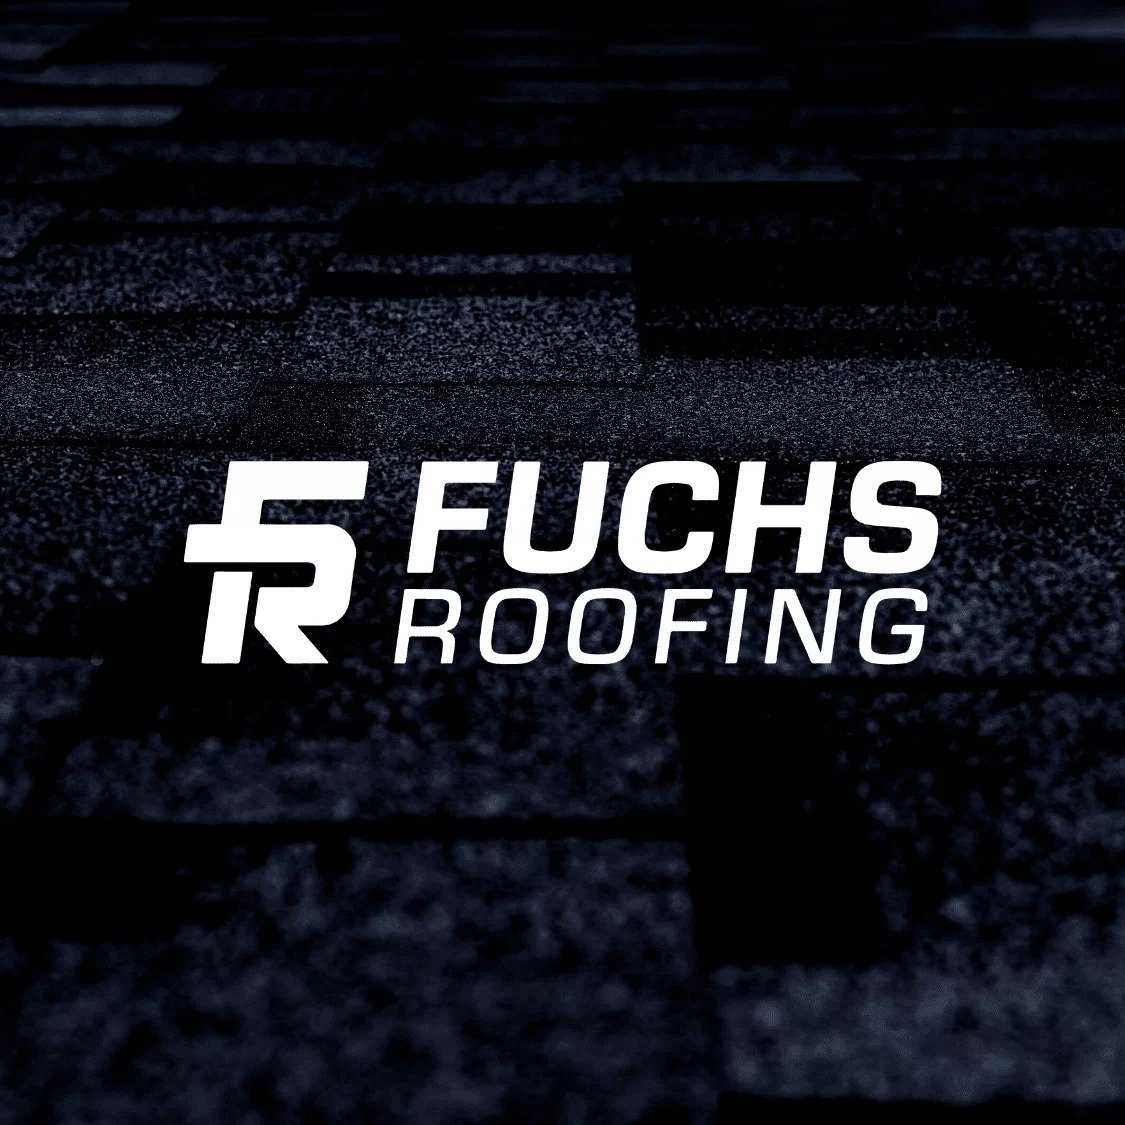 fuchs-roofing-by-white-box-create